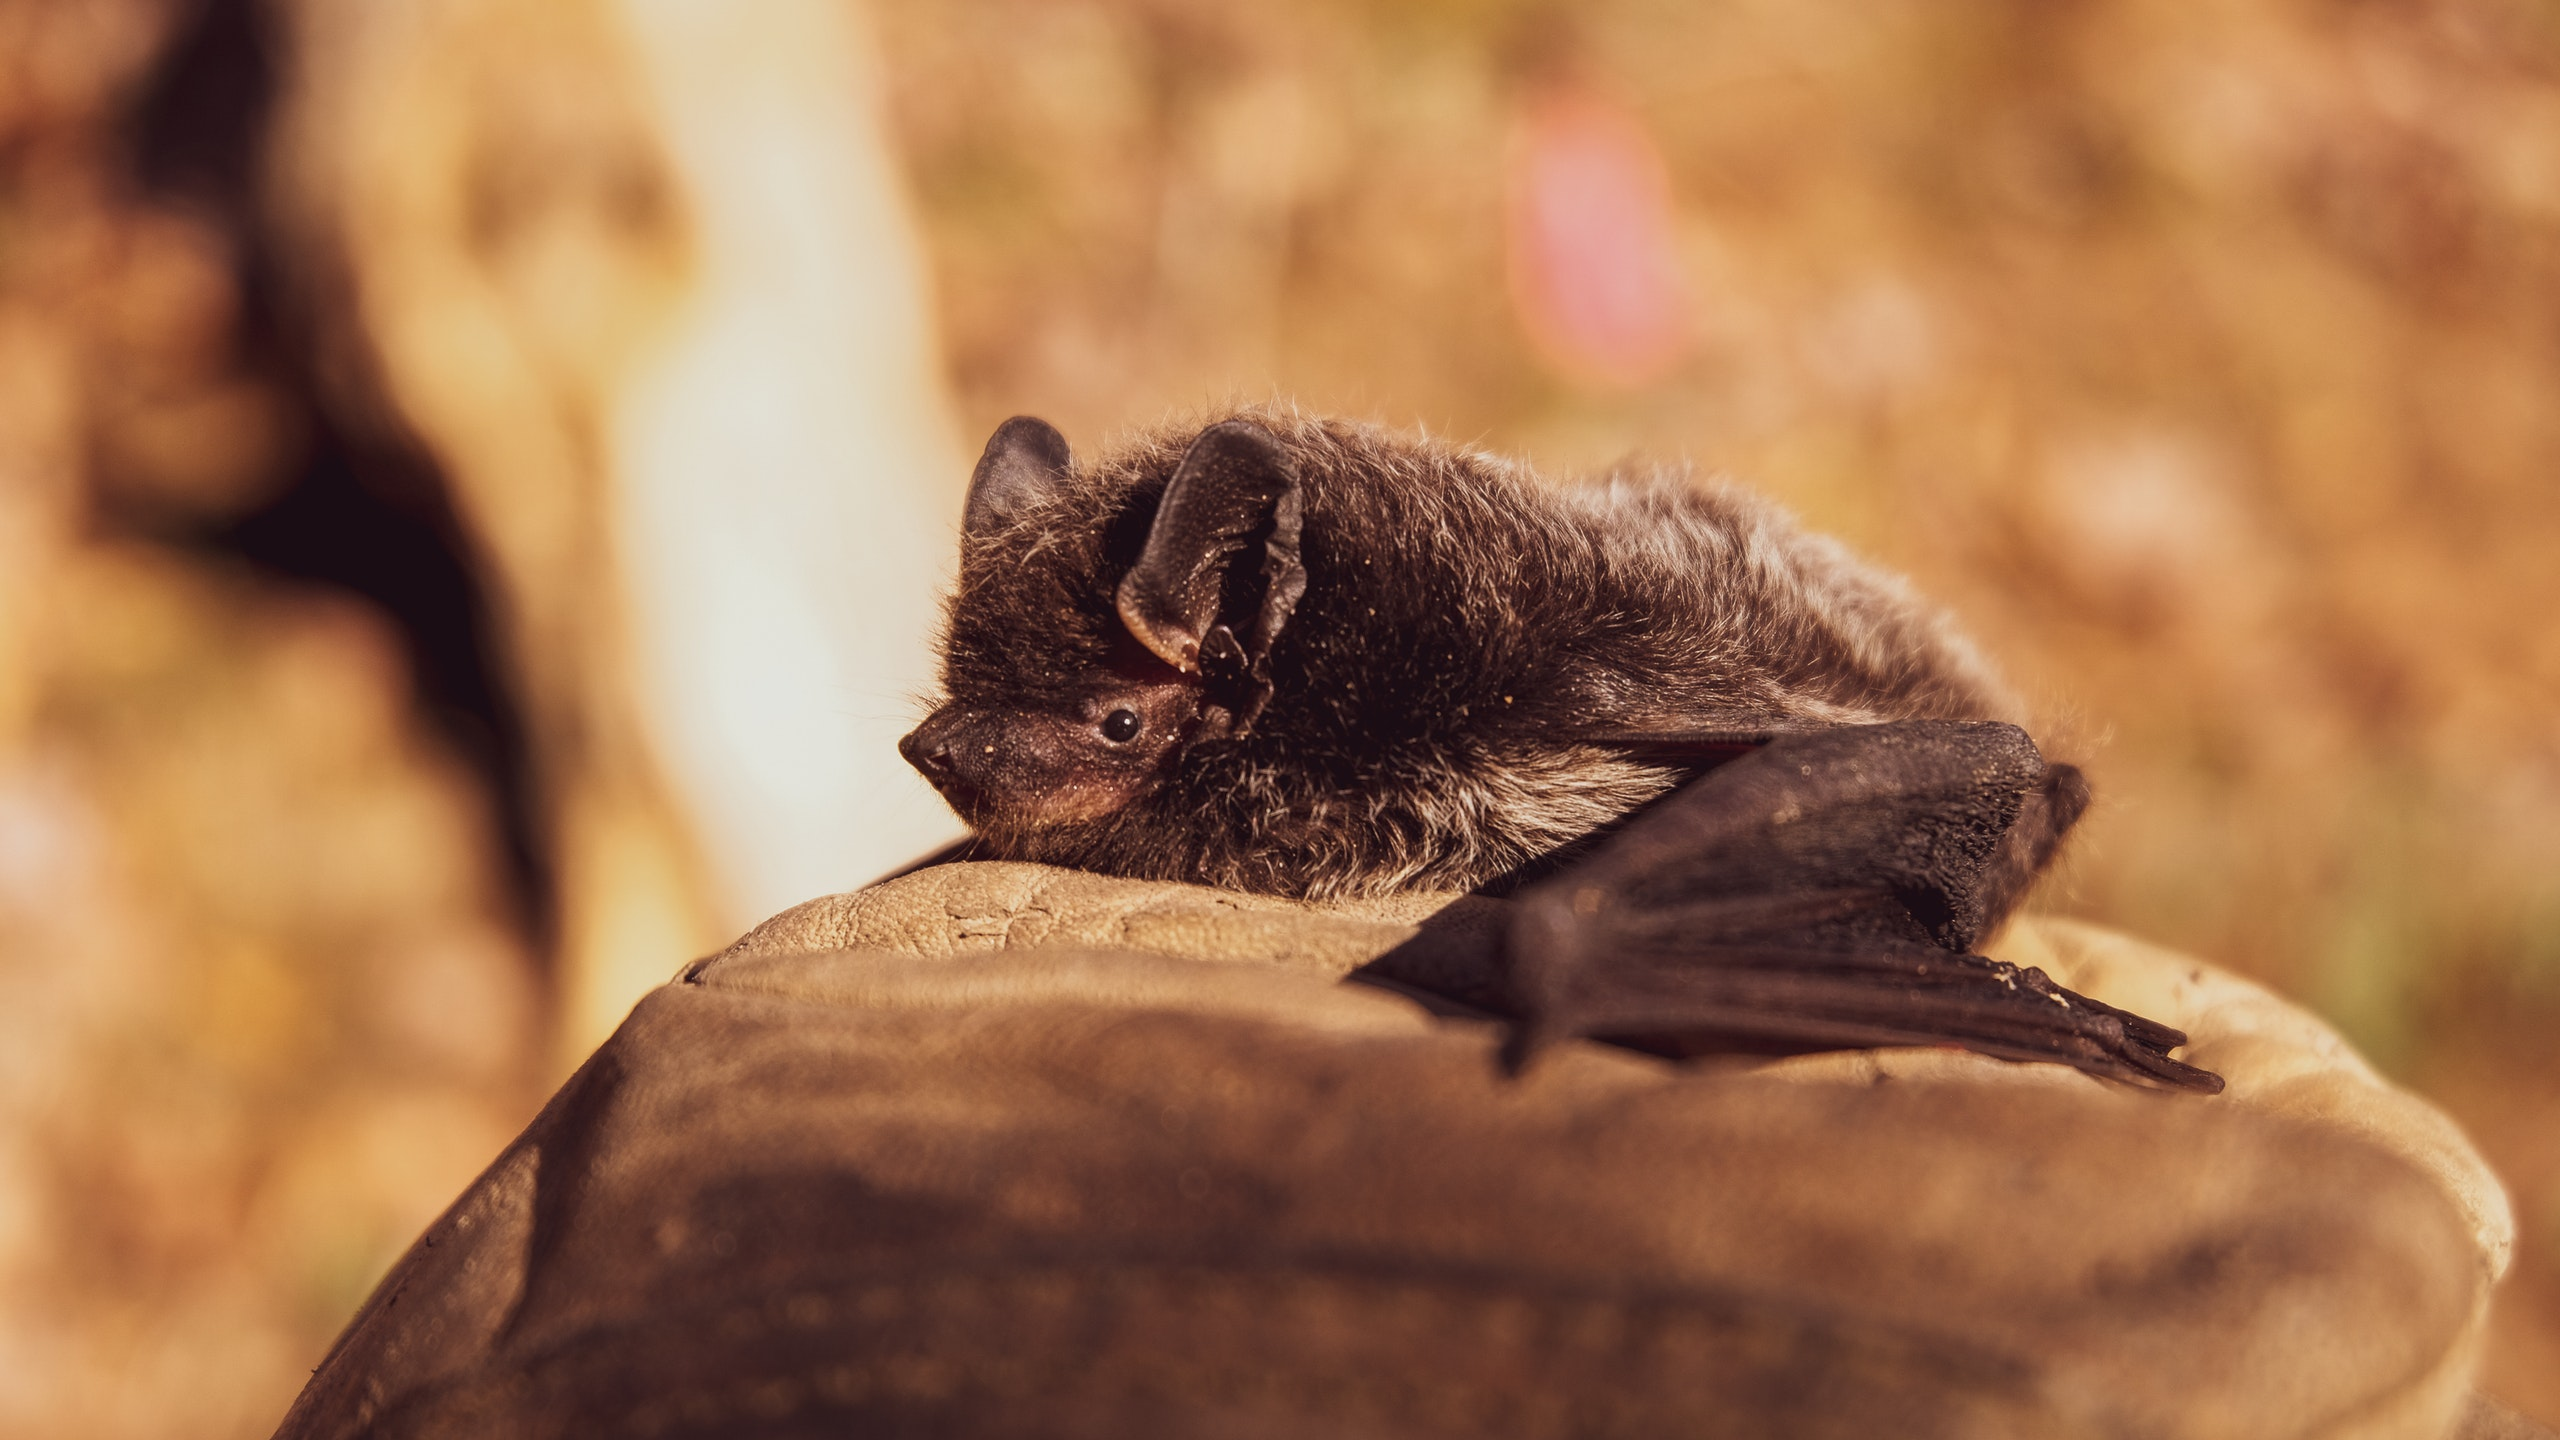 Don't Blame Bats for COVID-19, Israeli Biologists Say (VIDEO REPORT)